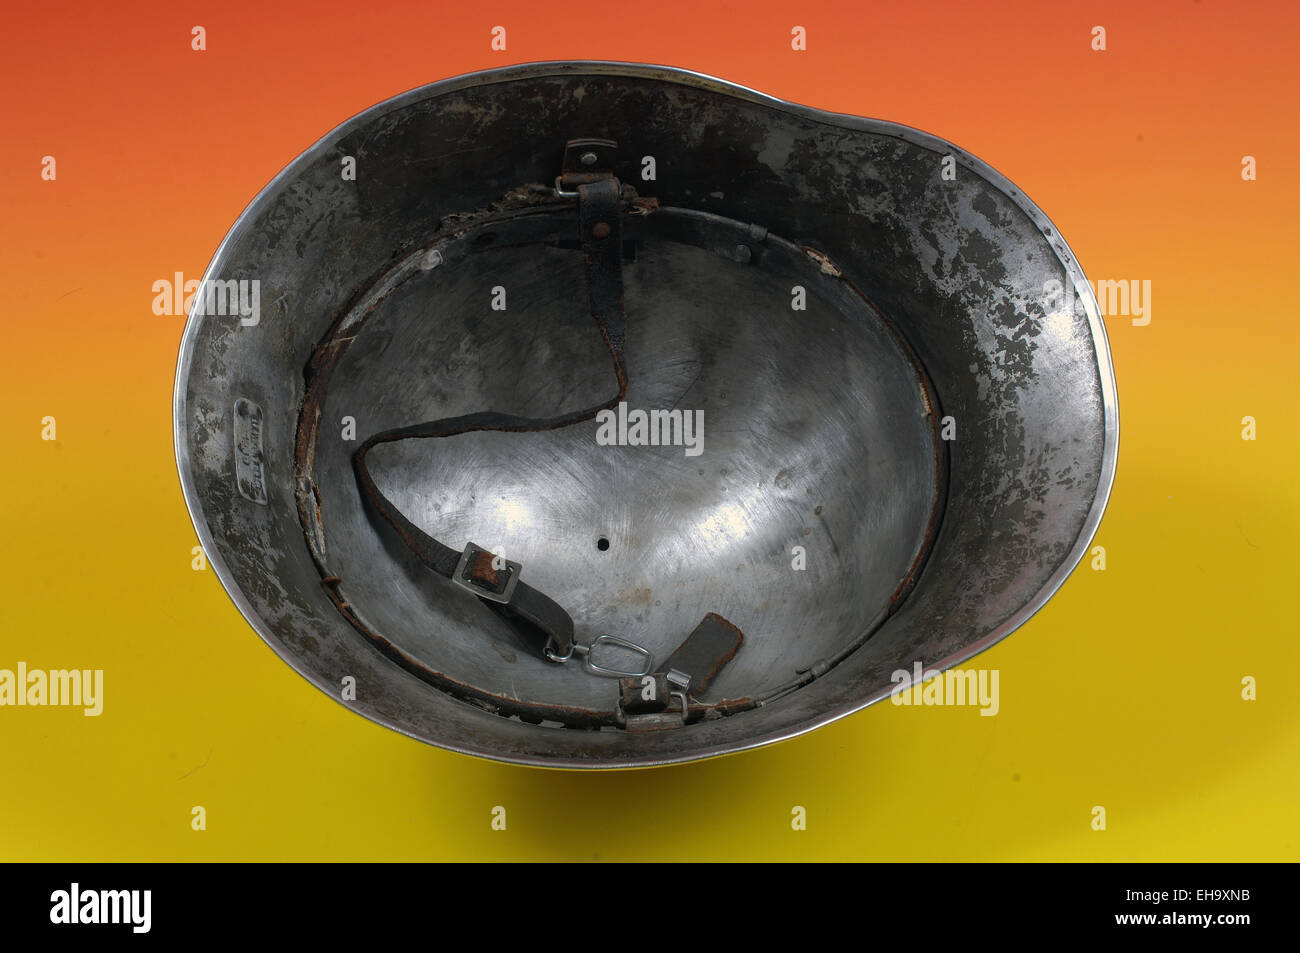 Poland WW2 Fireman Helmet Stock Photo: 79509175 - Alamy